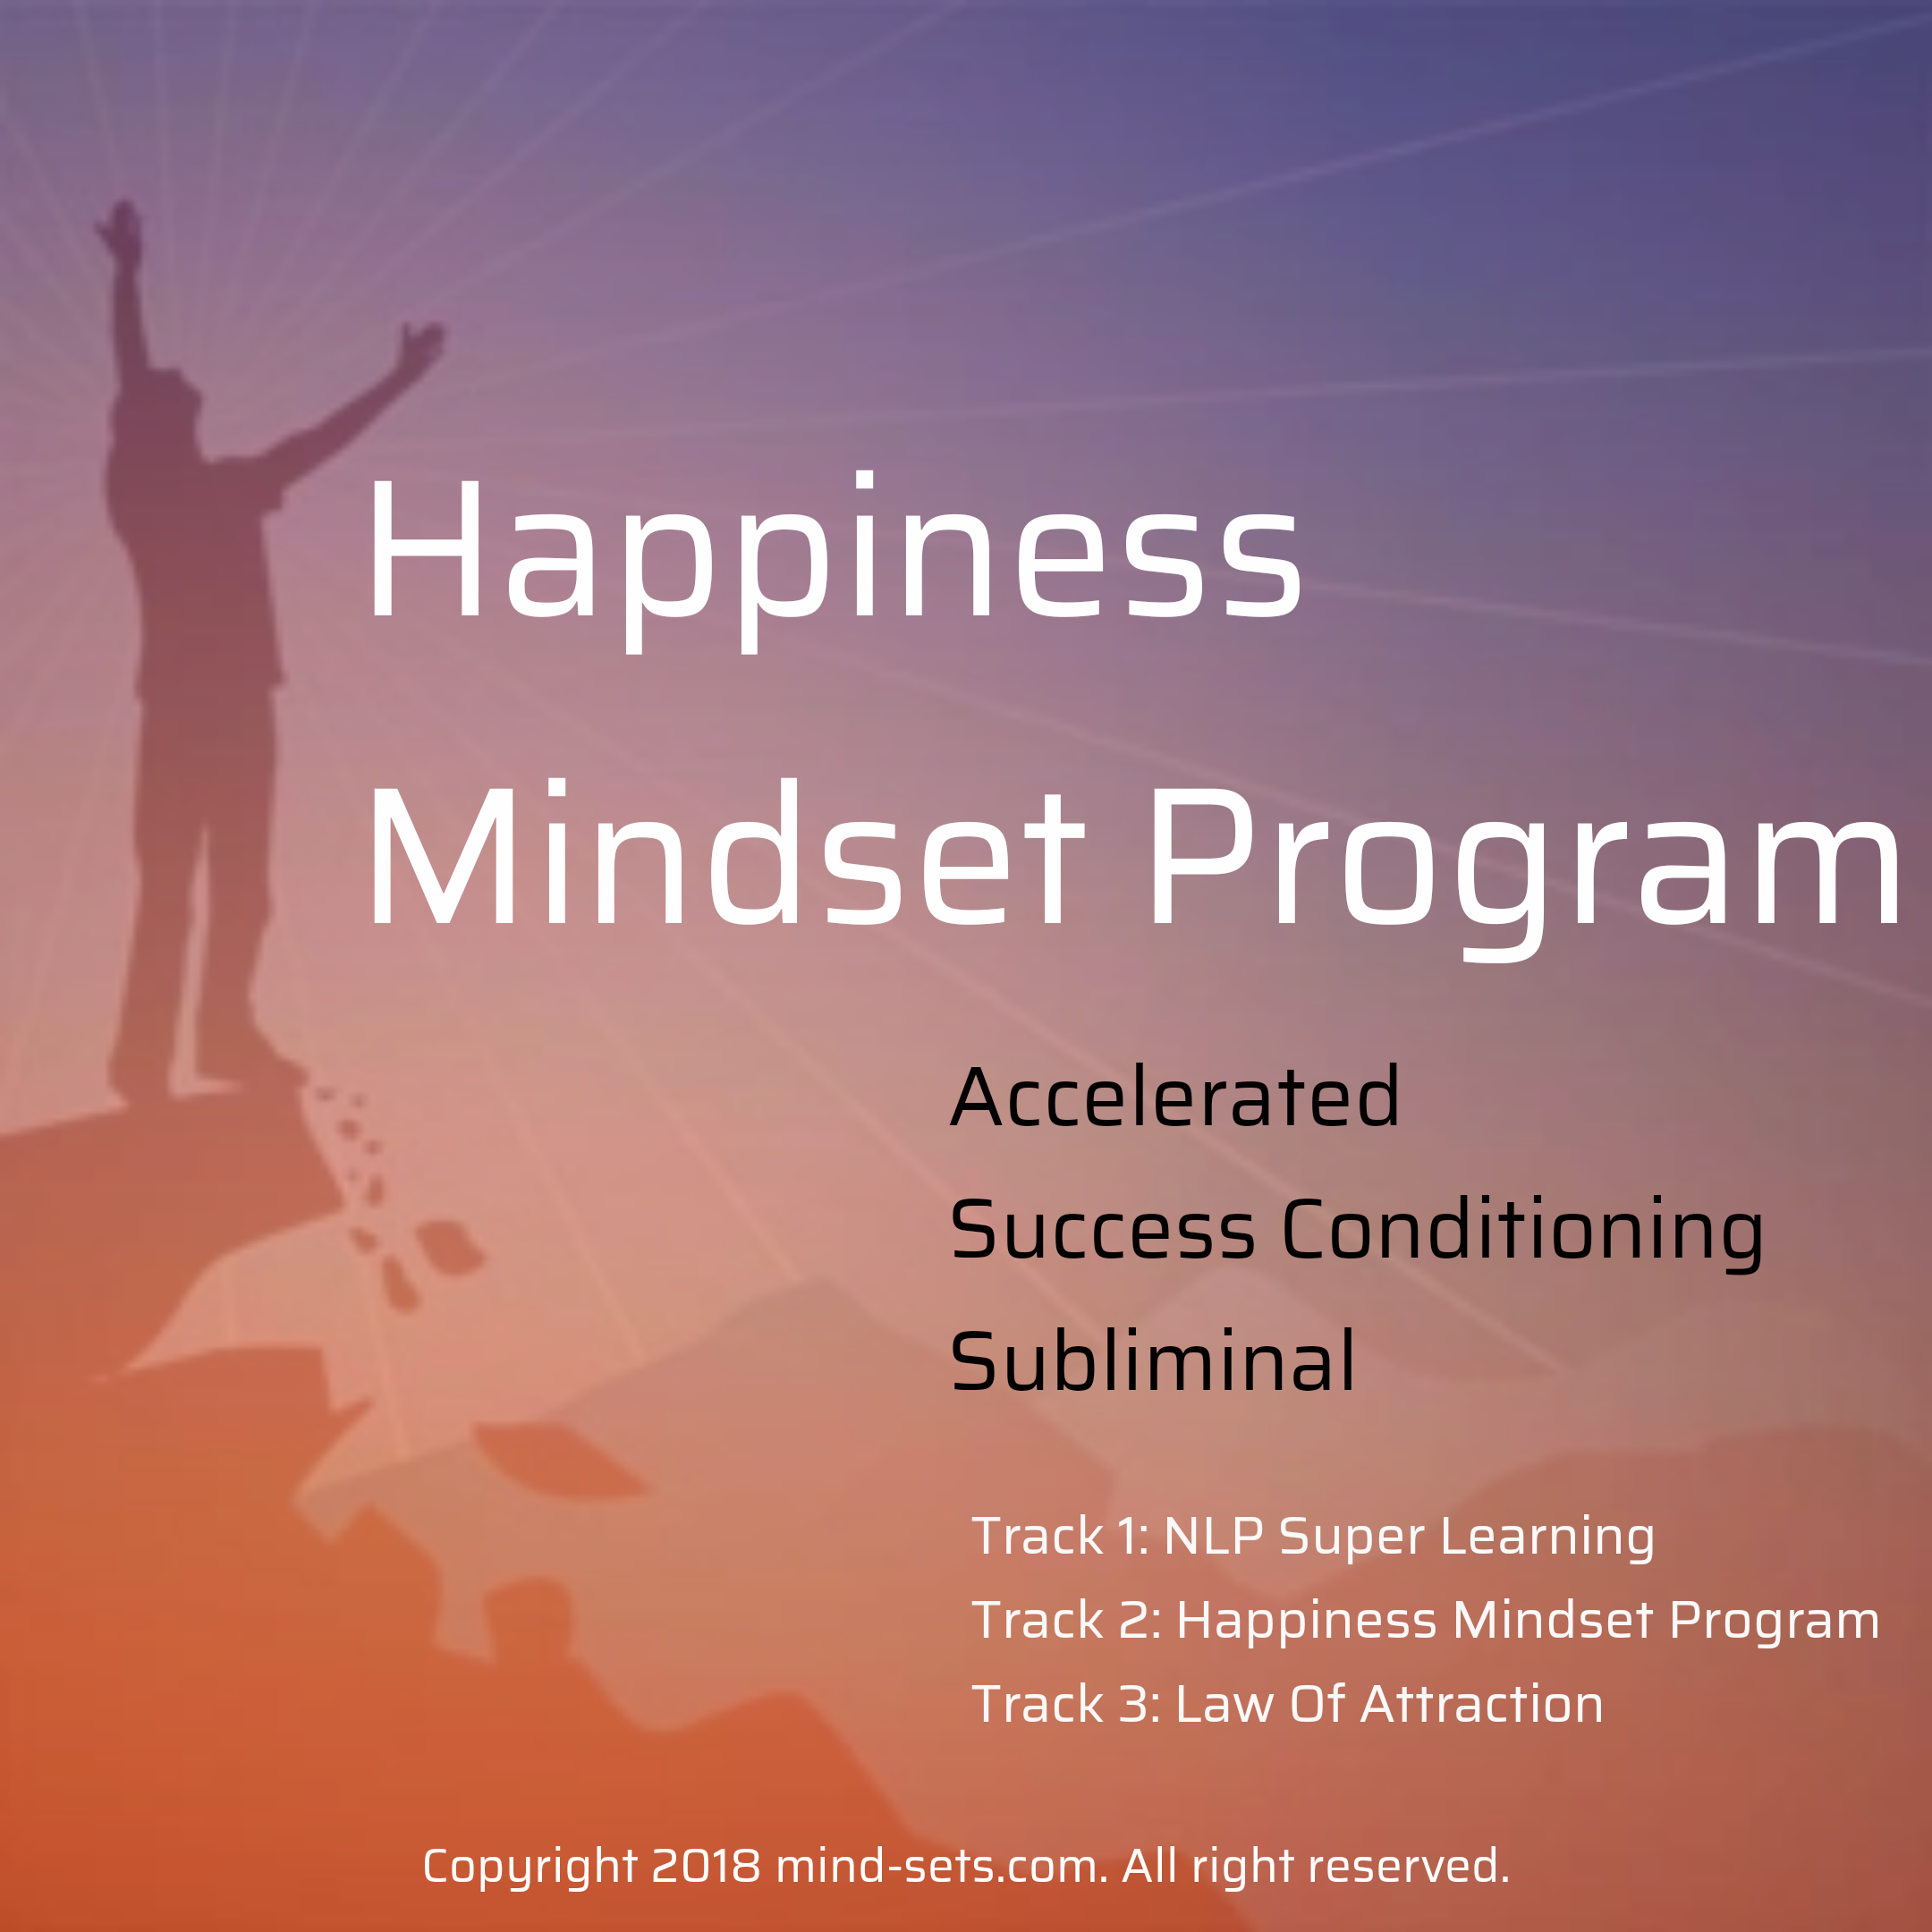 Happiness Mindset Program